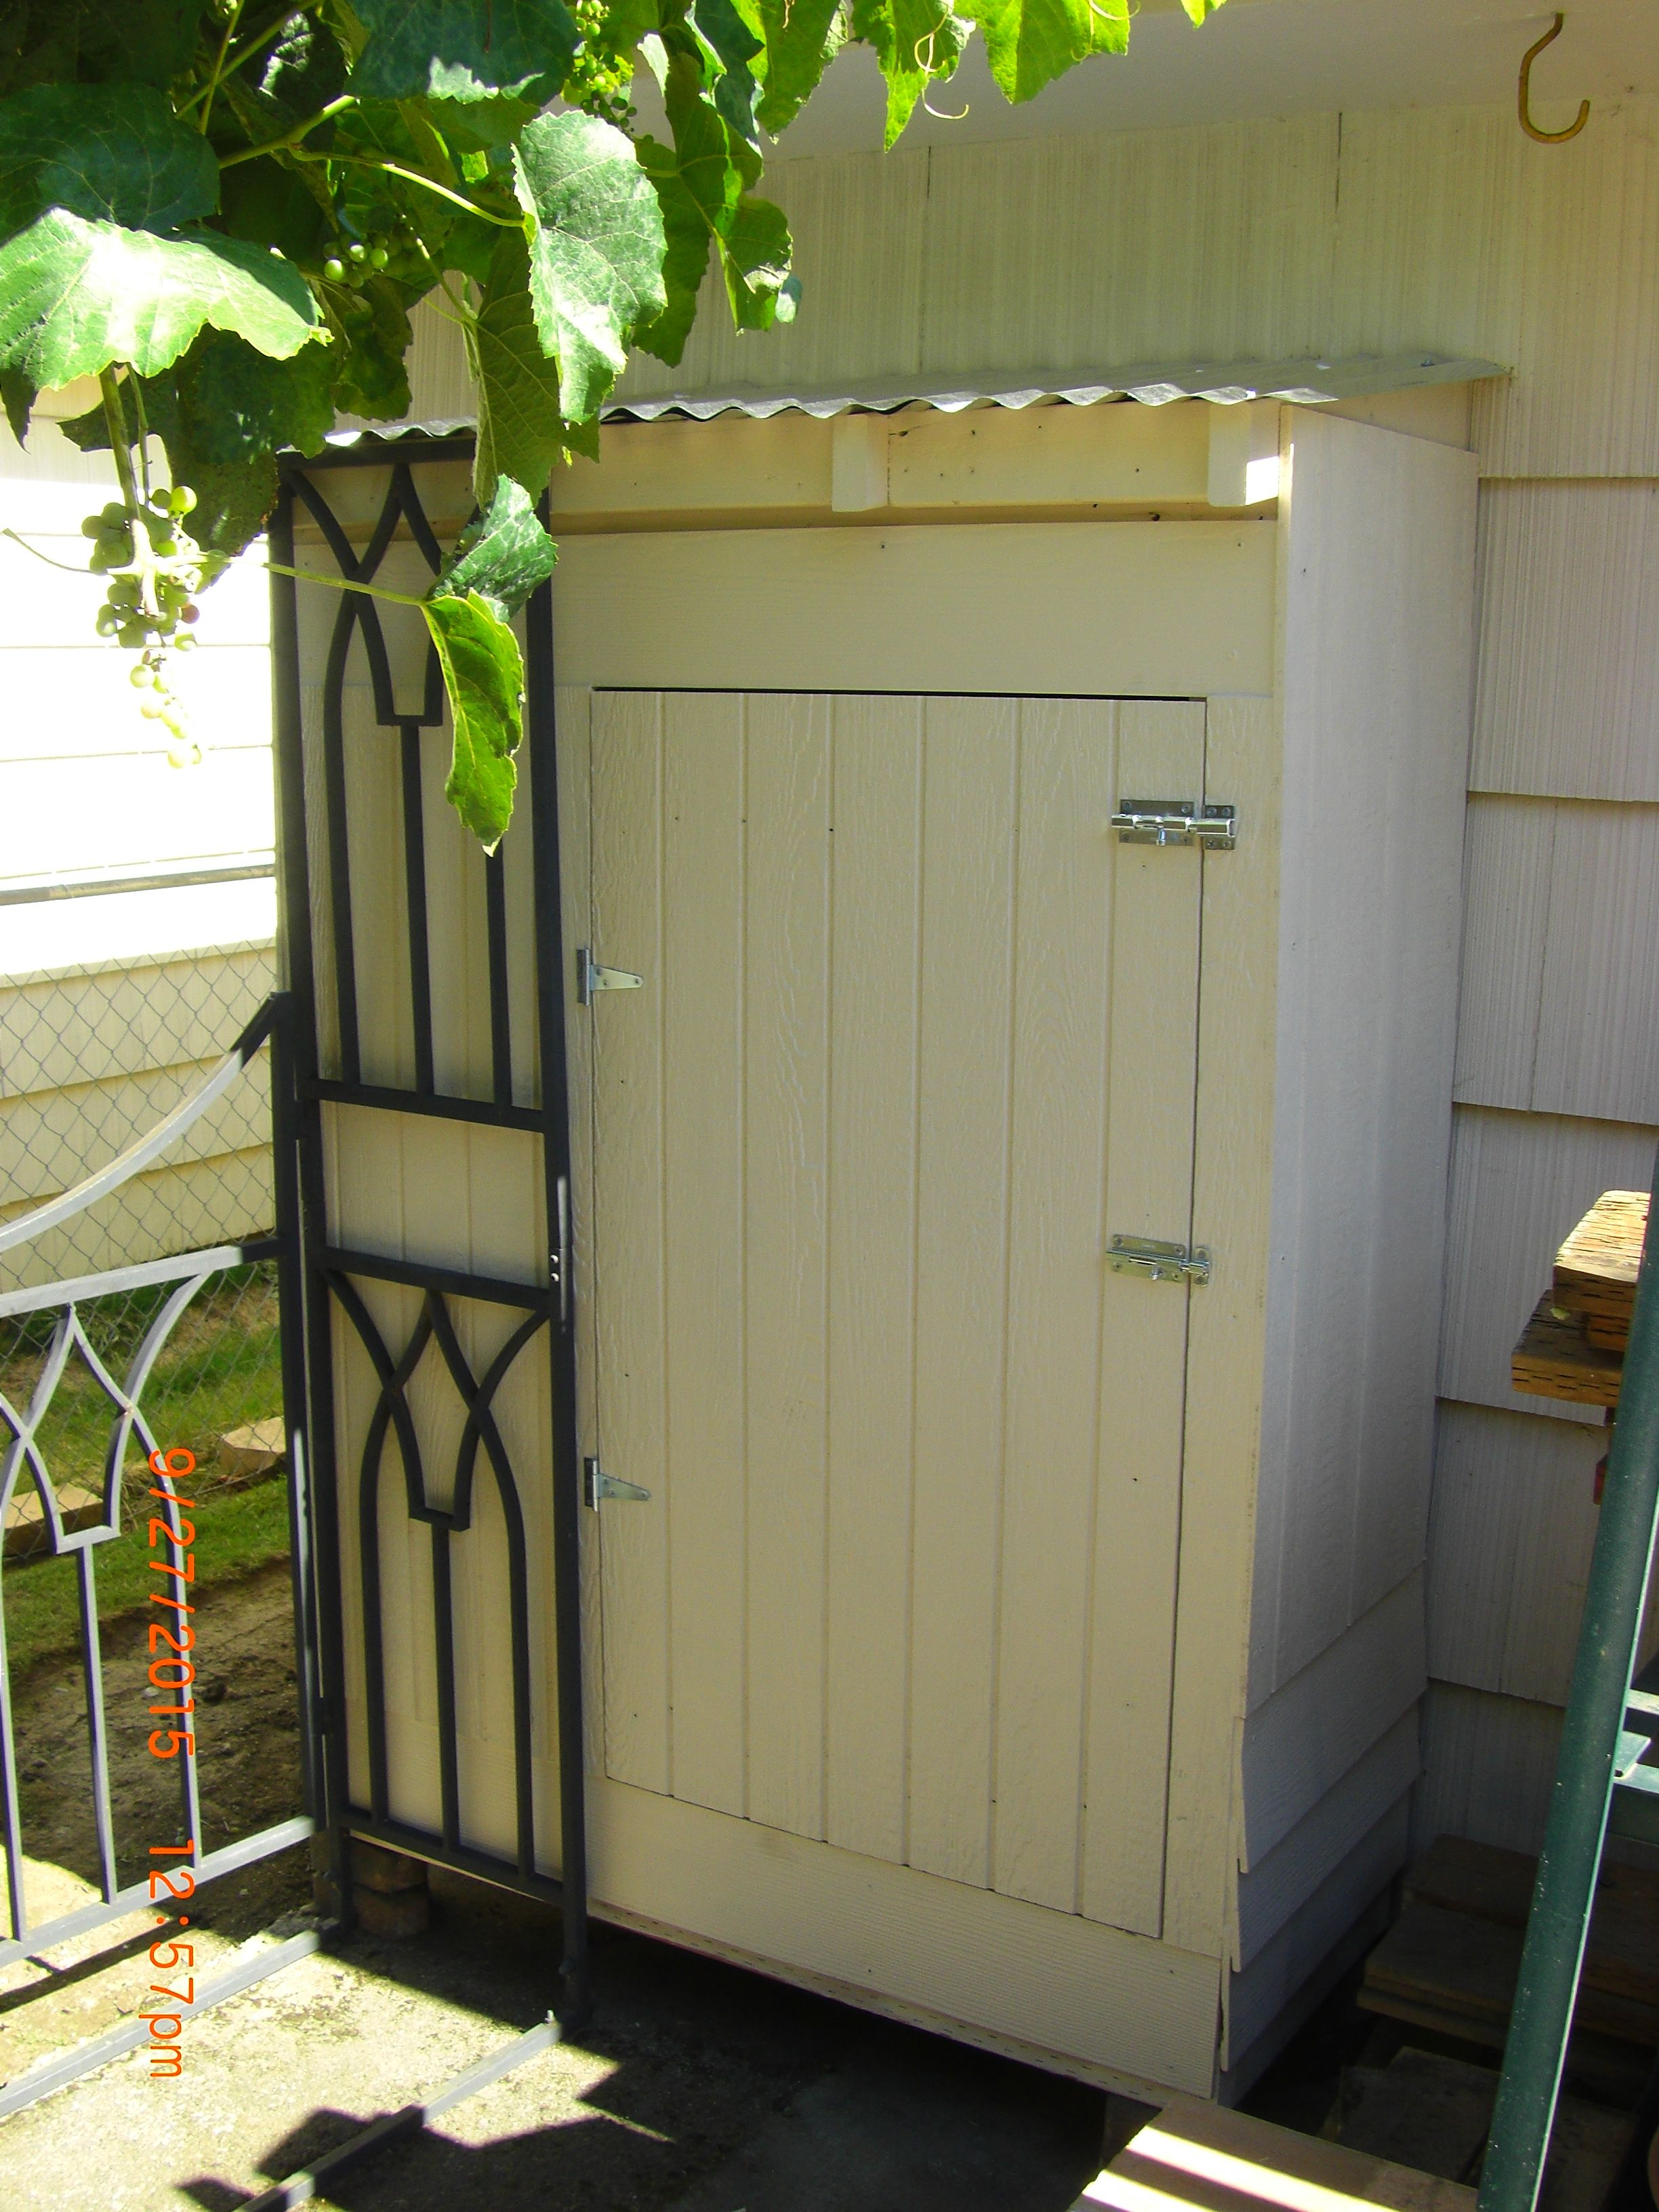 Firewood Shed Built Out Of Scrap Wood & Sheet Metal